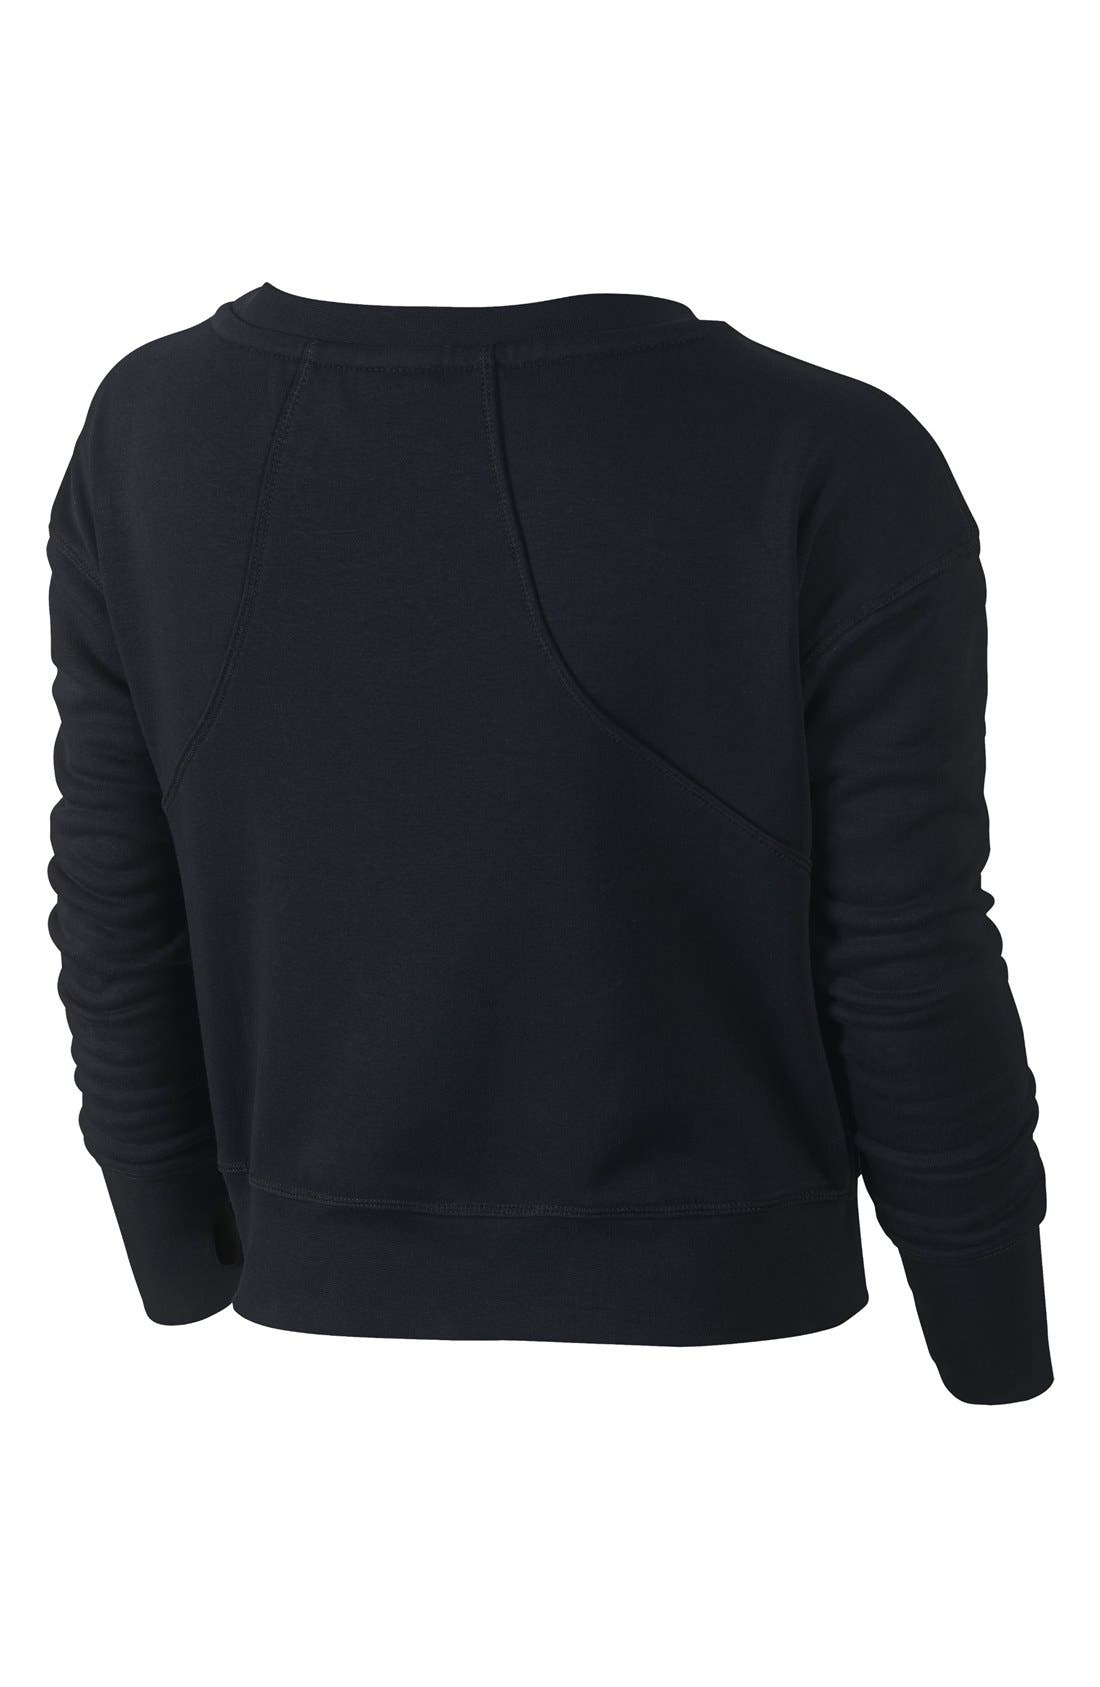 Alternate Image 2  - Nike Crop Sweatshirt (Big Girls) (Online Only)